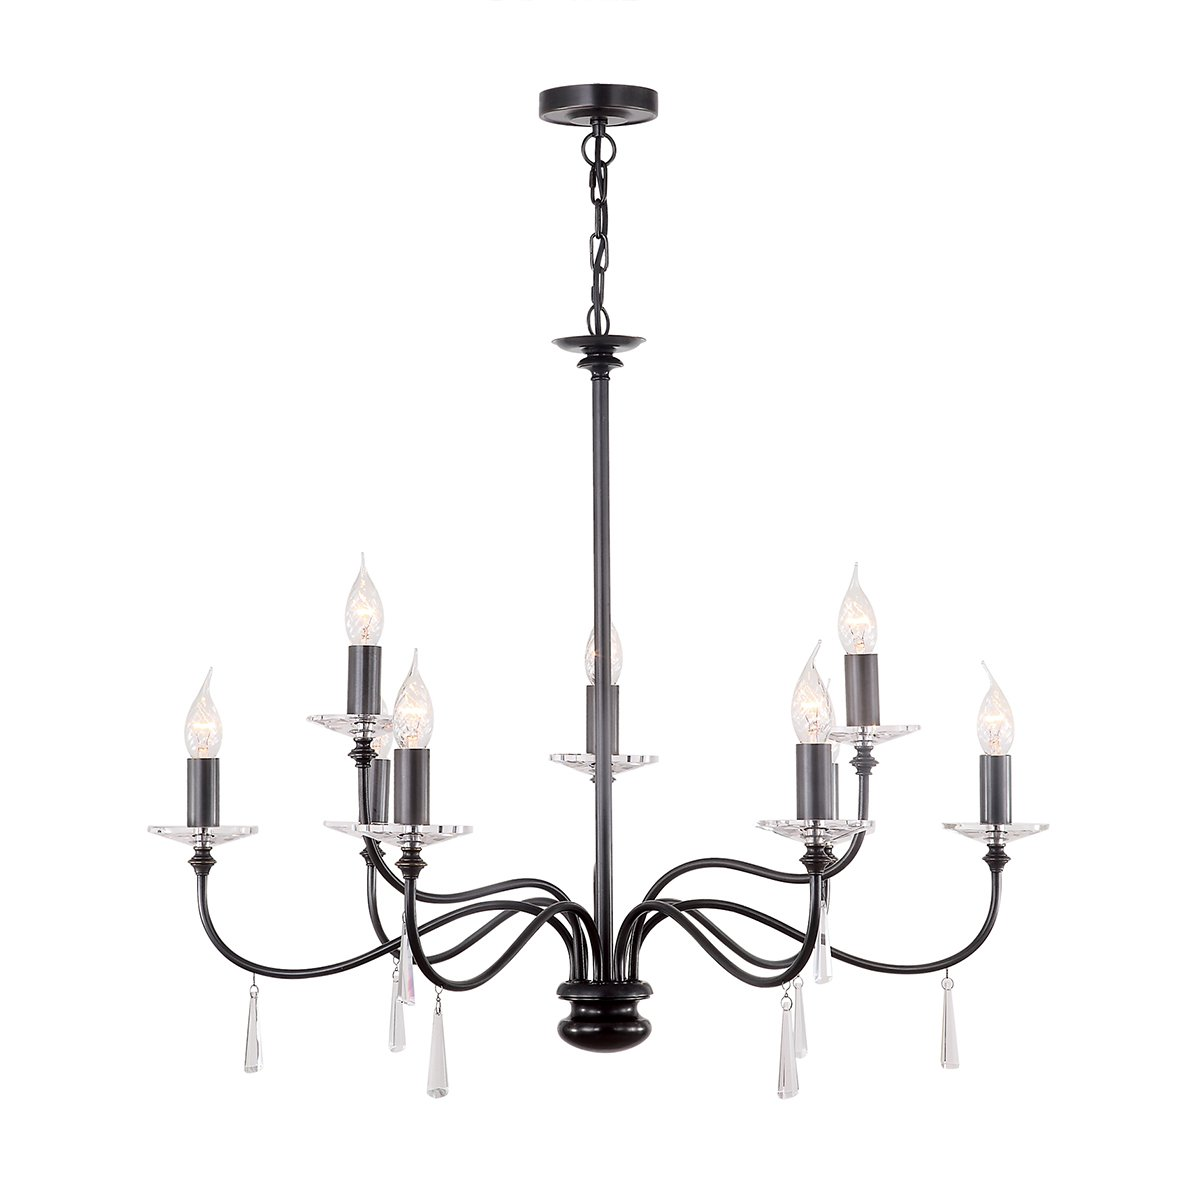 Elstead FP9-PN Finsbury Park 9lt Chandelier, Shades not Included in Old Bronze